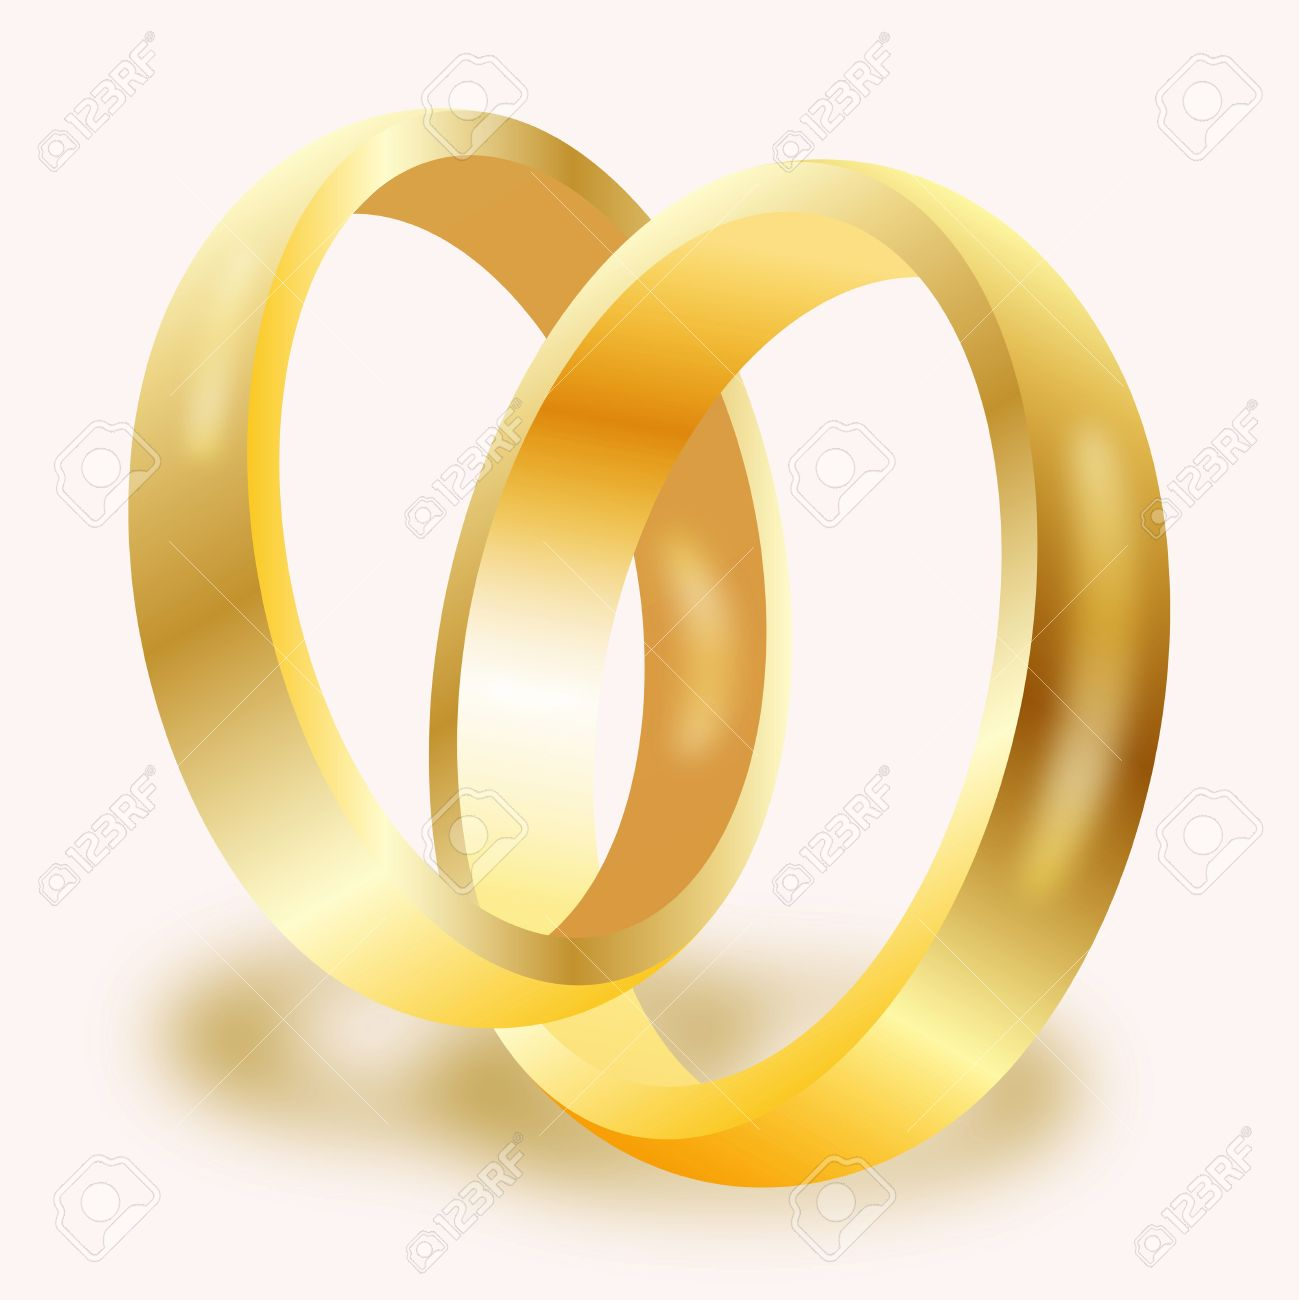 Graphic illustration of a pair of gold wedding rings Stock Vector - 14225225